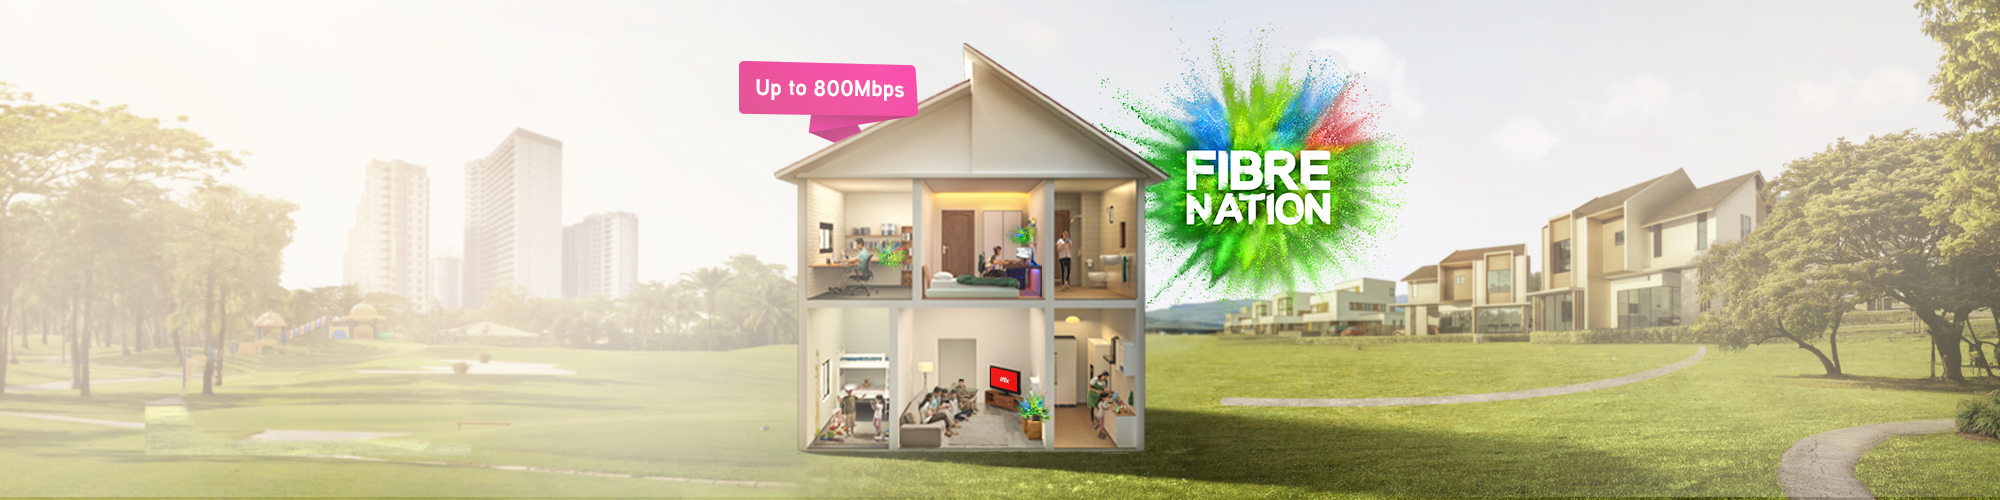 Maxis Fibrenation elevates fibre experience with new superfast speed packages and 1st ever mesh WiFi devices